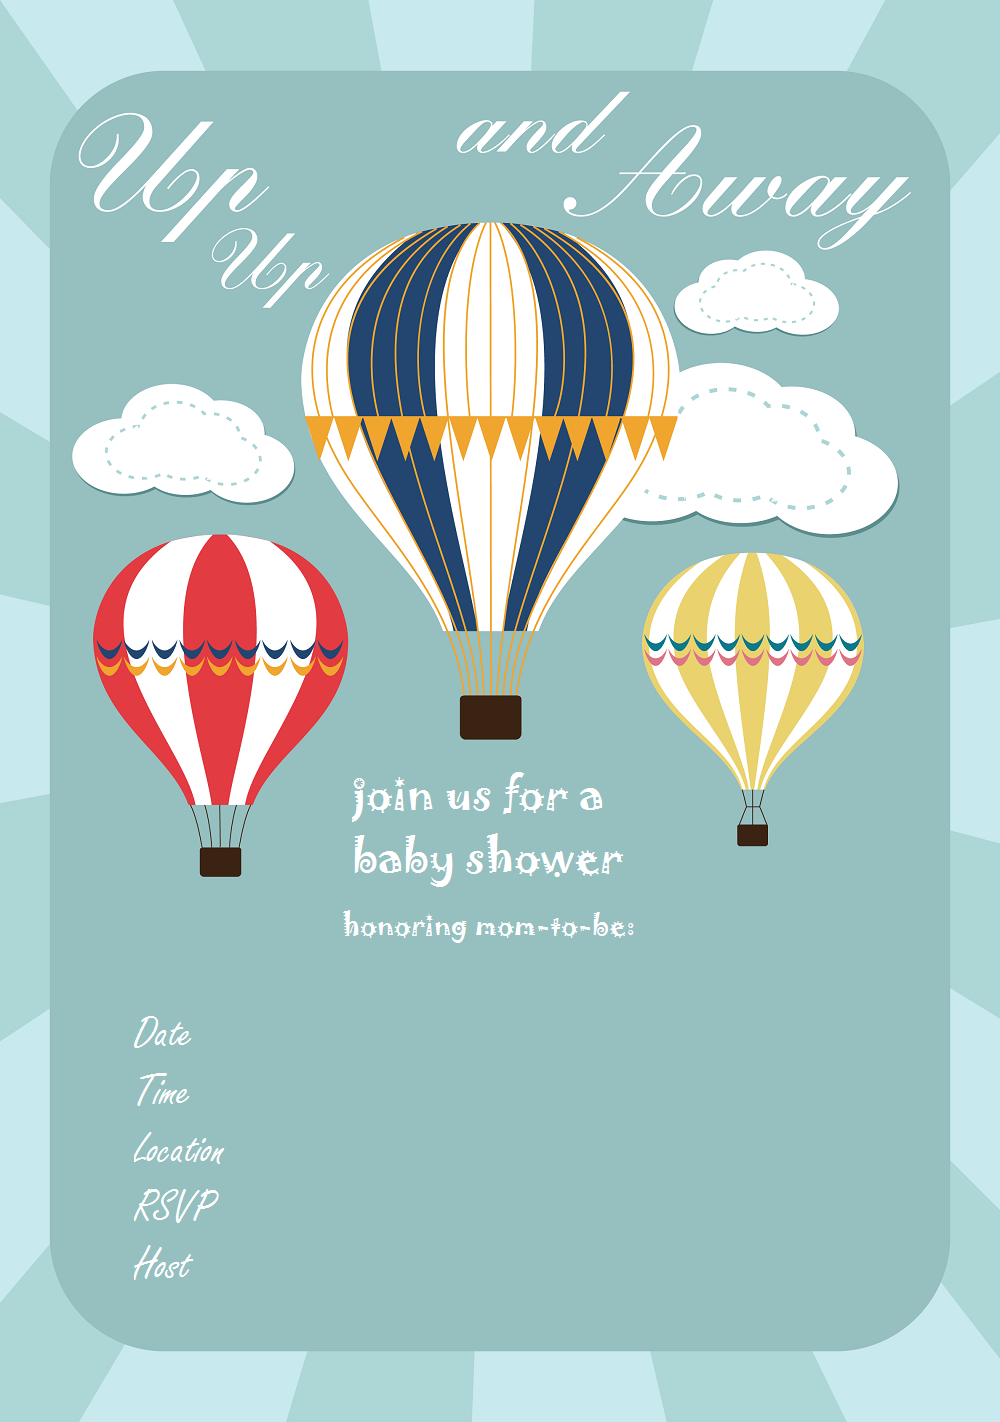 Free Baby Shower Invitation Hot Air Balloon Up Up And Away Via Www